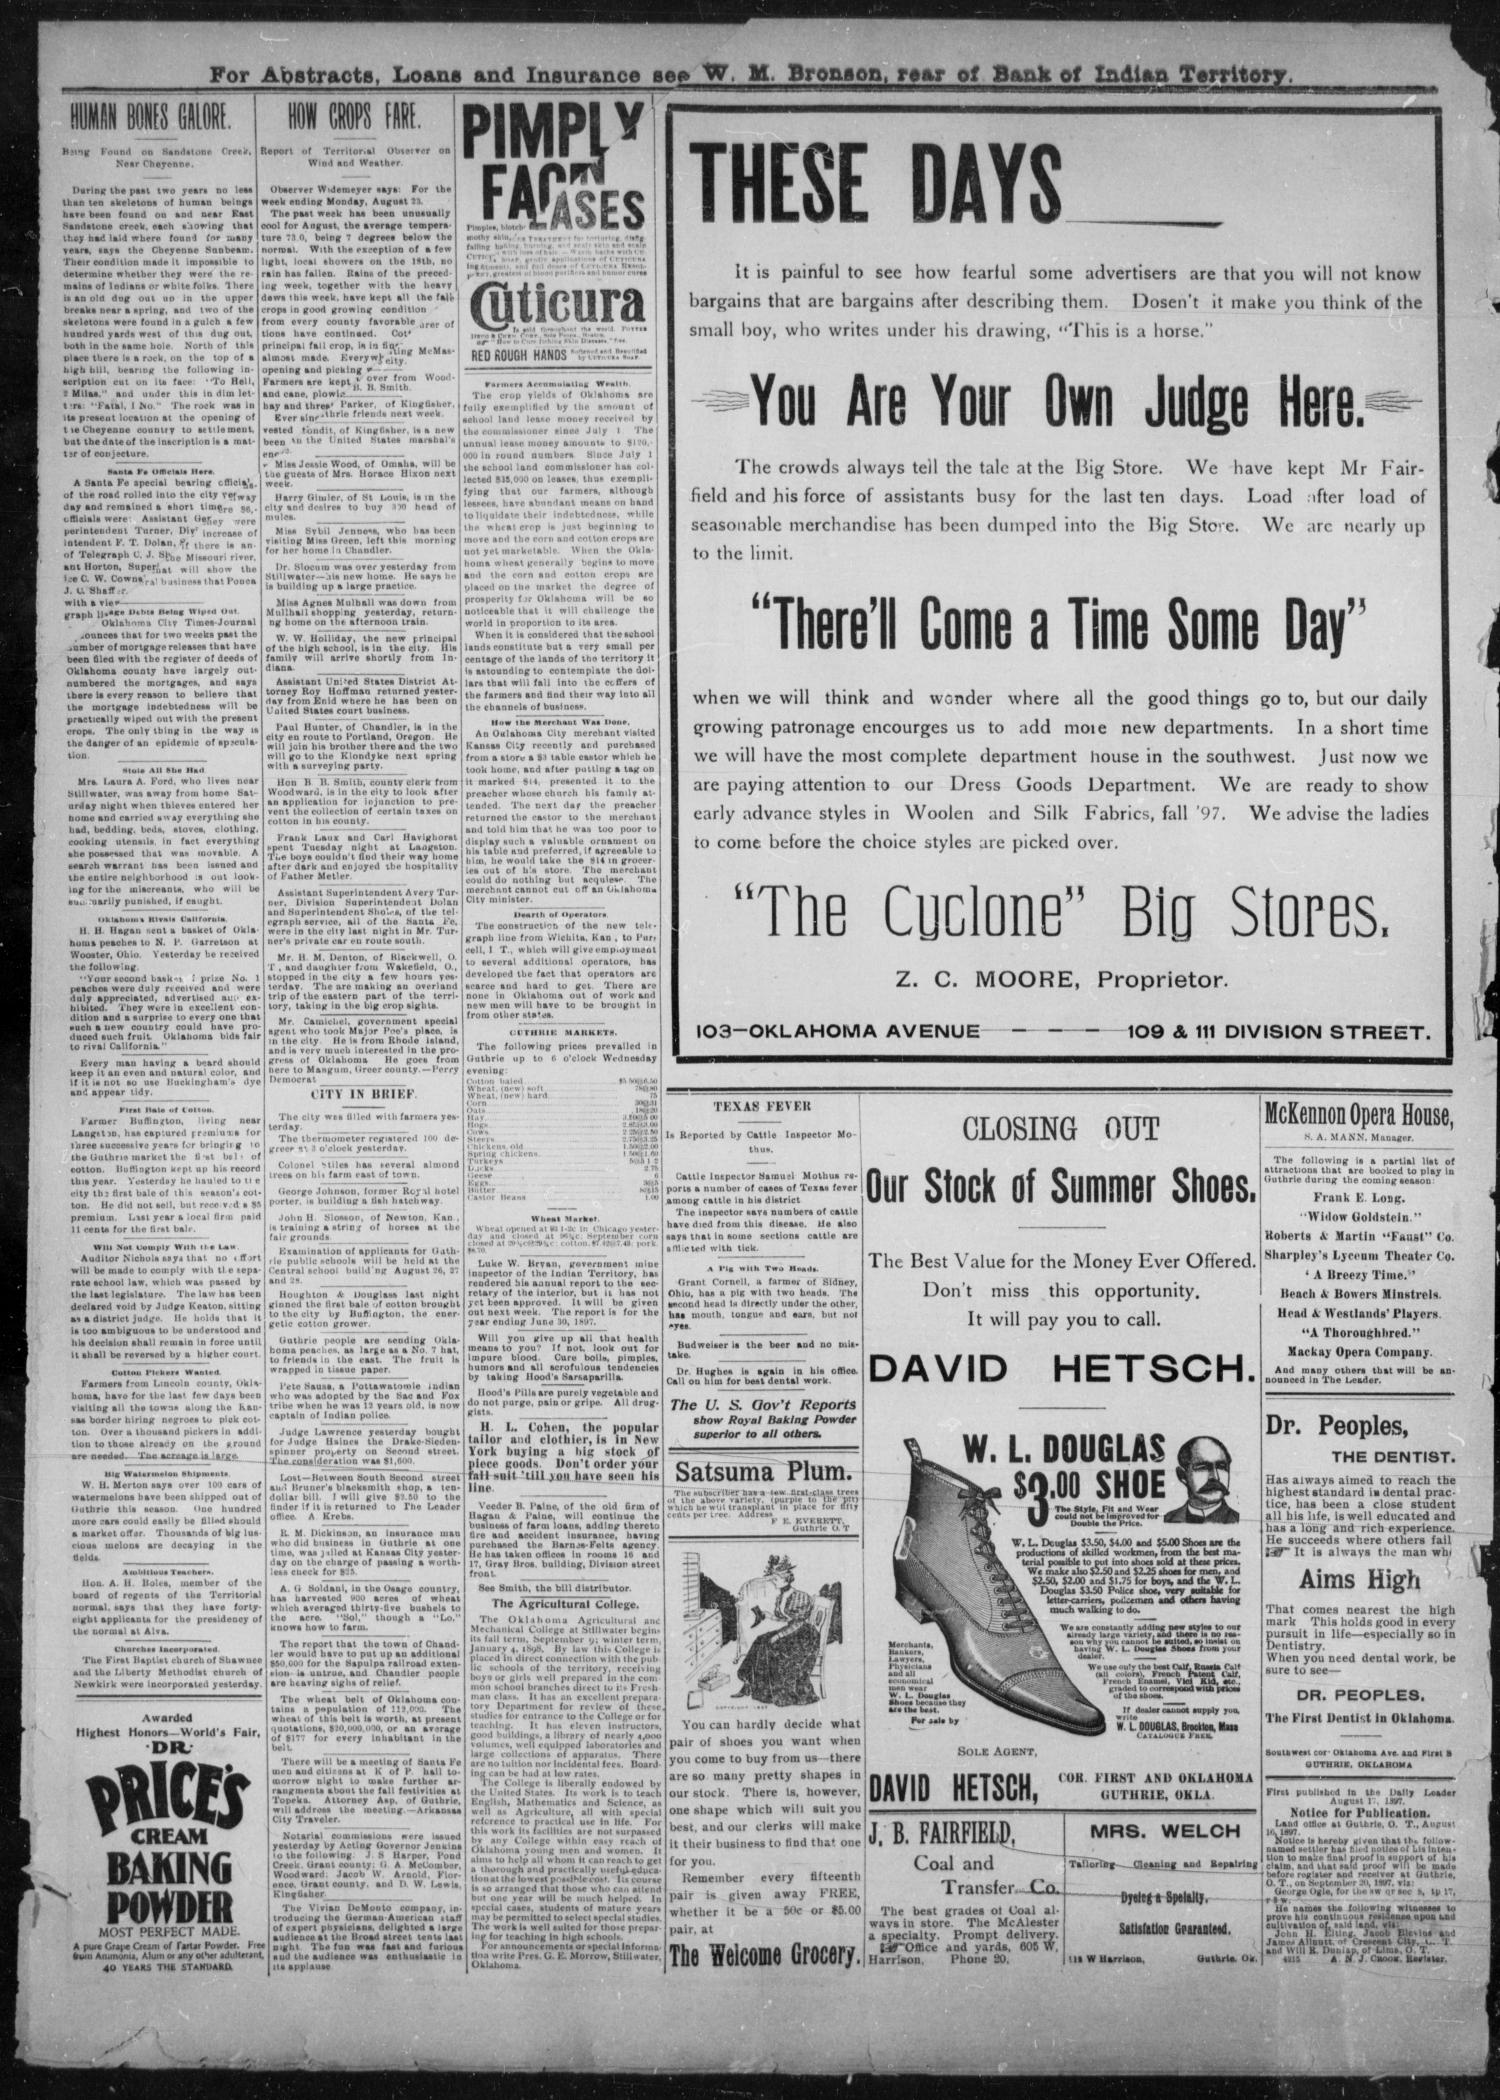 The Guthrie Daily Leader. (Guthrie, Okla.), Vol. 10, No. 74, Ed. 1, Thursday, August 26, 1897                                                                                                      [Sequence #]: 4 of 4